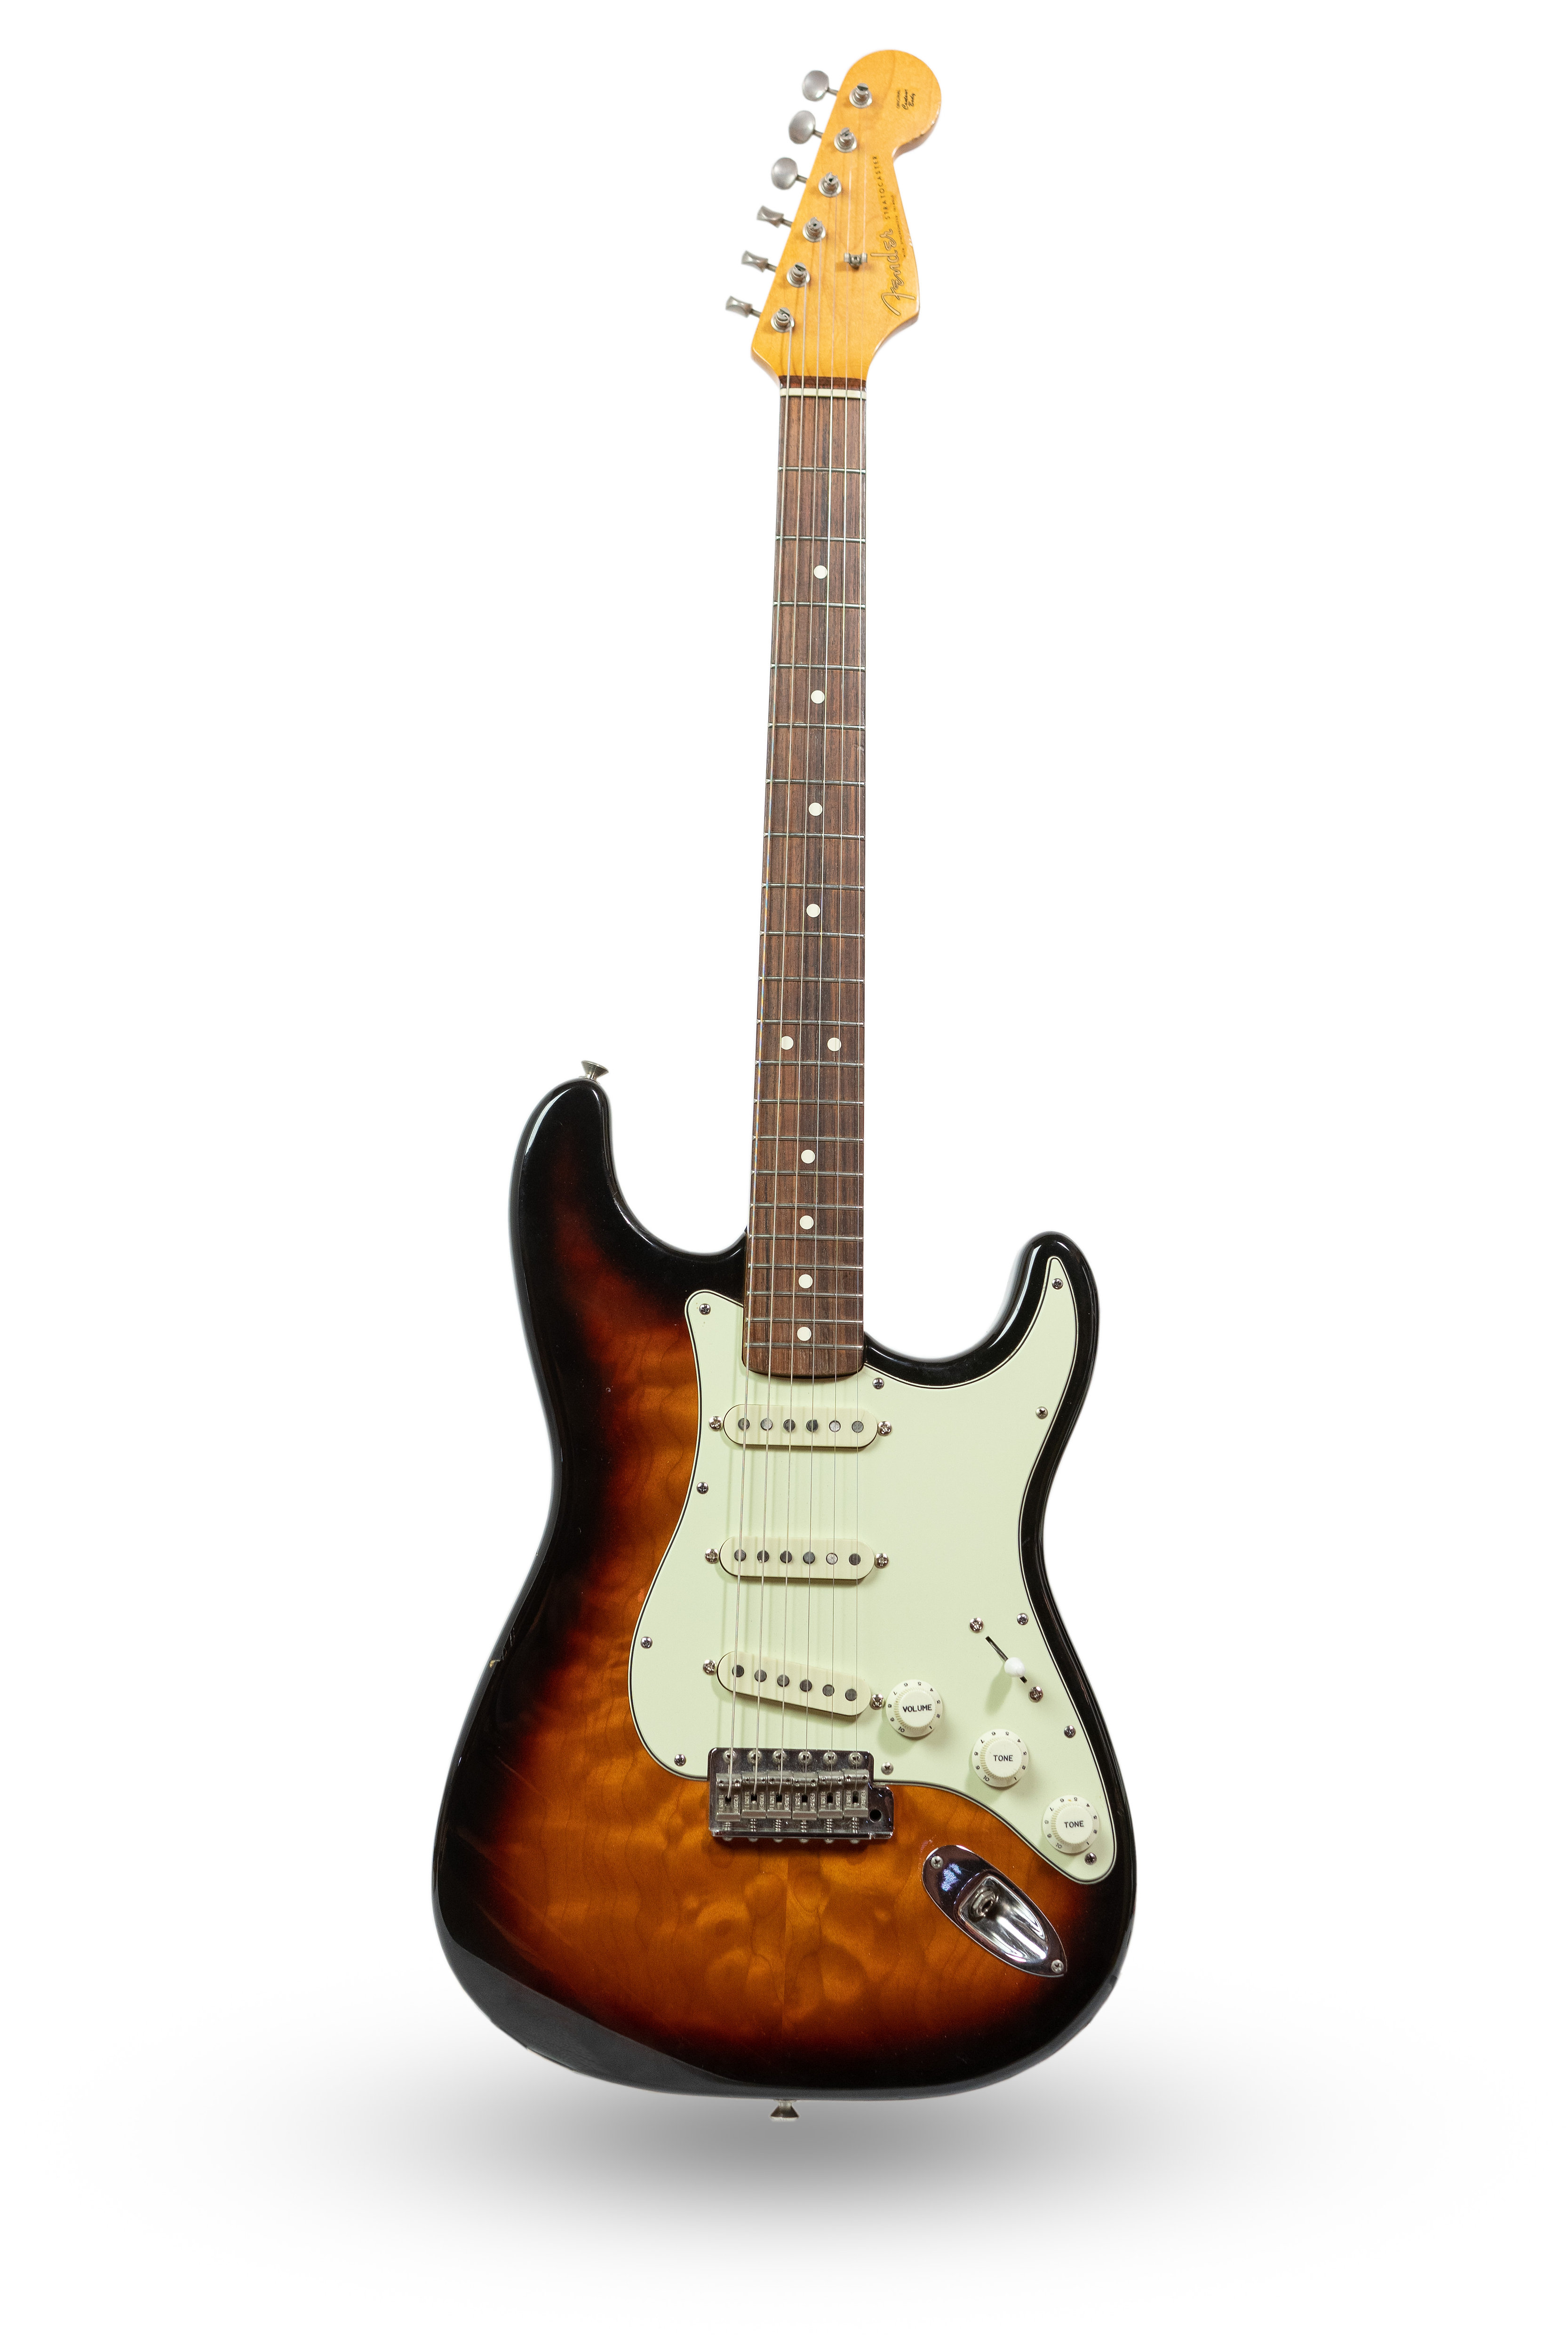 Used 1994 Fender '62 Stratocaster Guitar Center 30th Anniversary